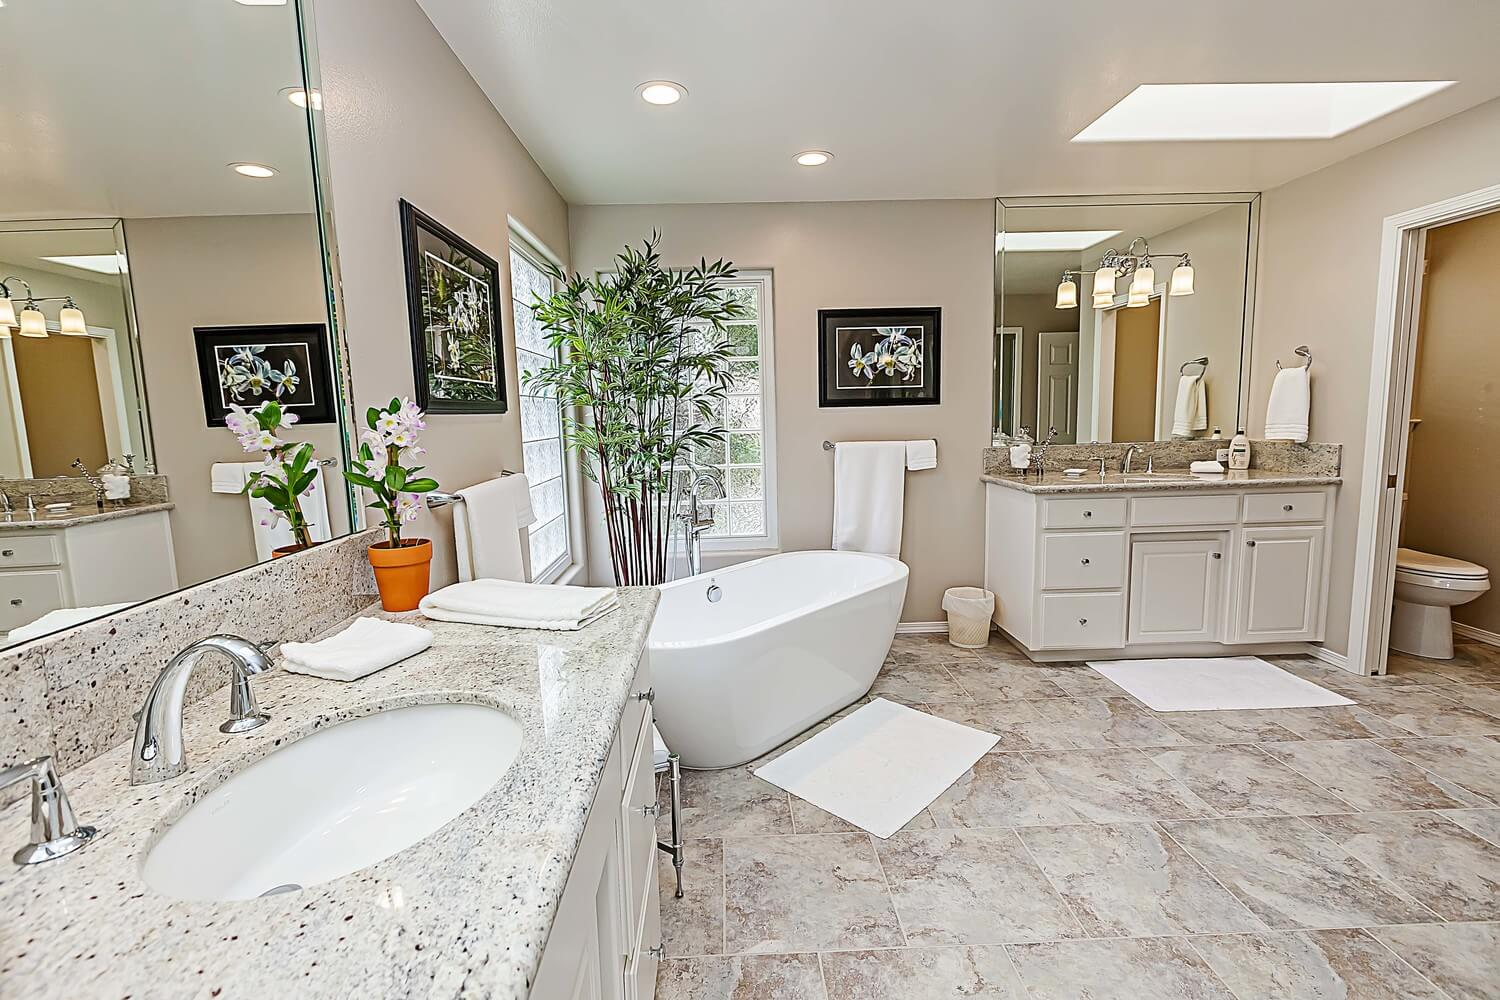 kitchen and bath remodel sink faucet sets central areas to monitor in bathroom renovation